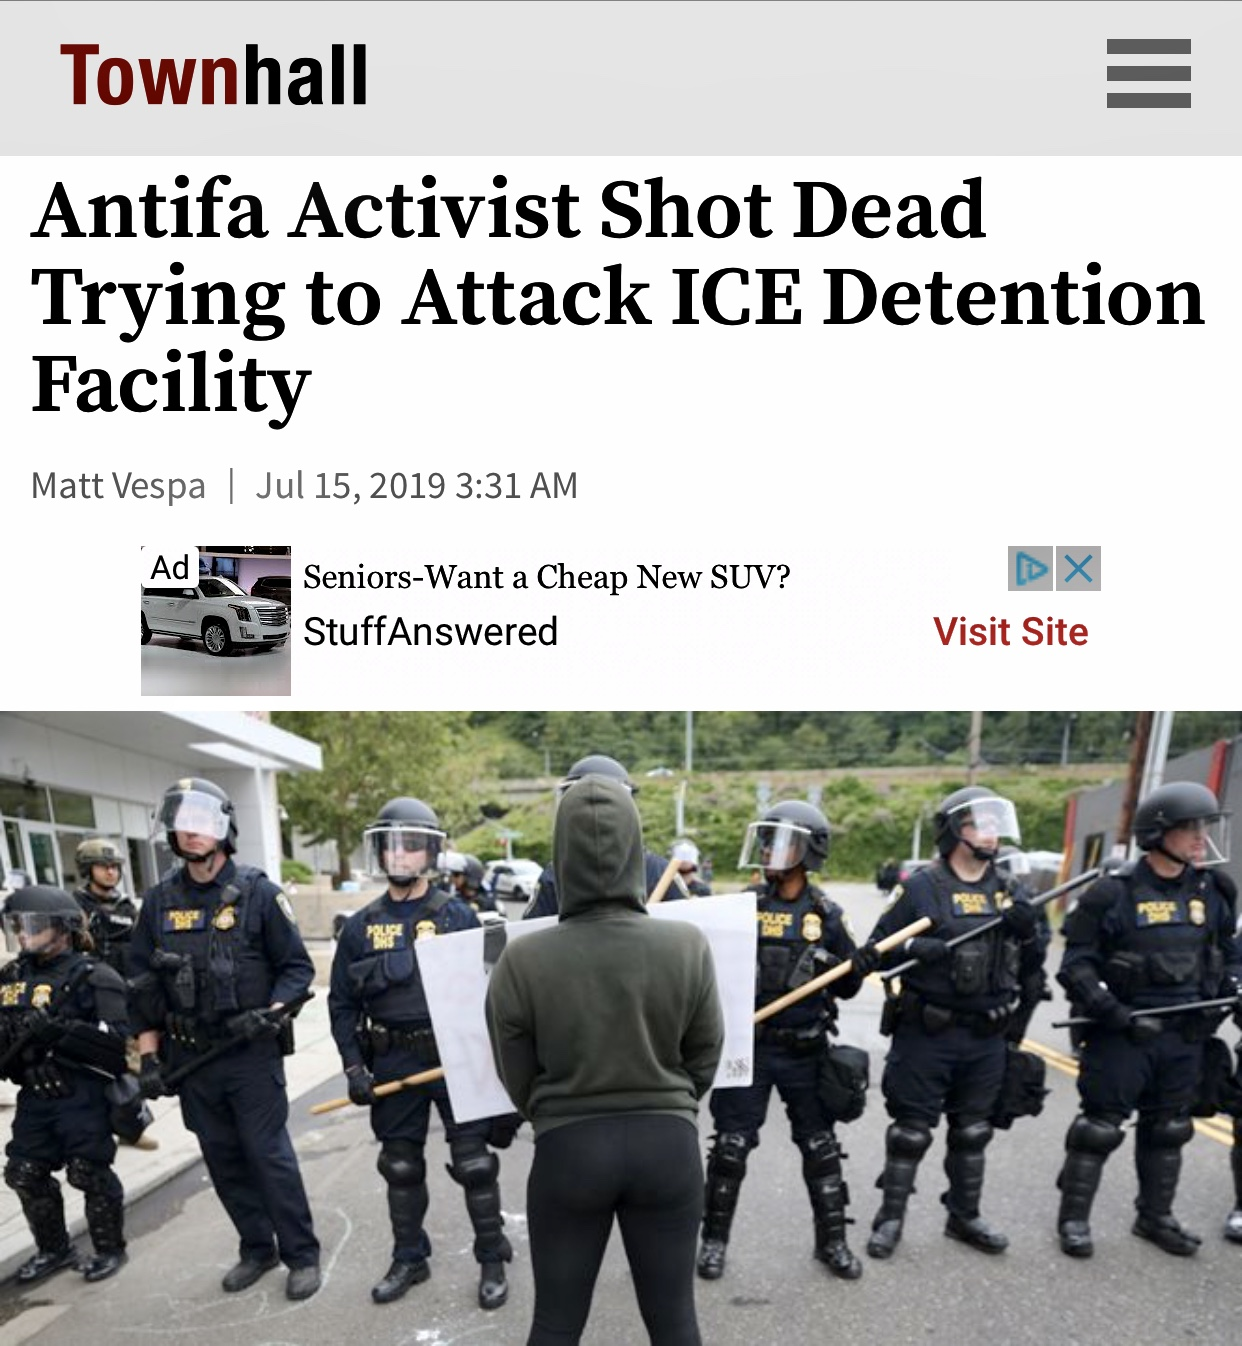 Antifa Activist Shot Dead Trying to Attack ICE Detention Facility